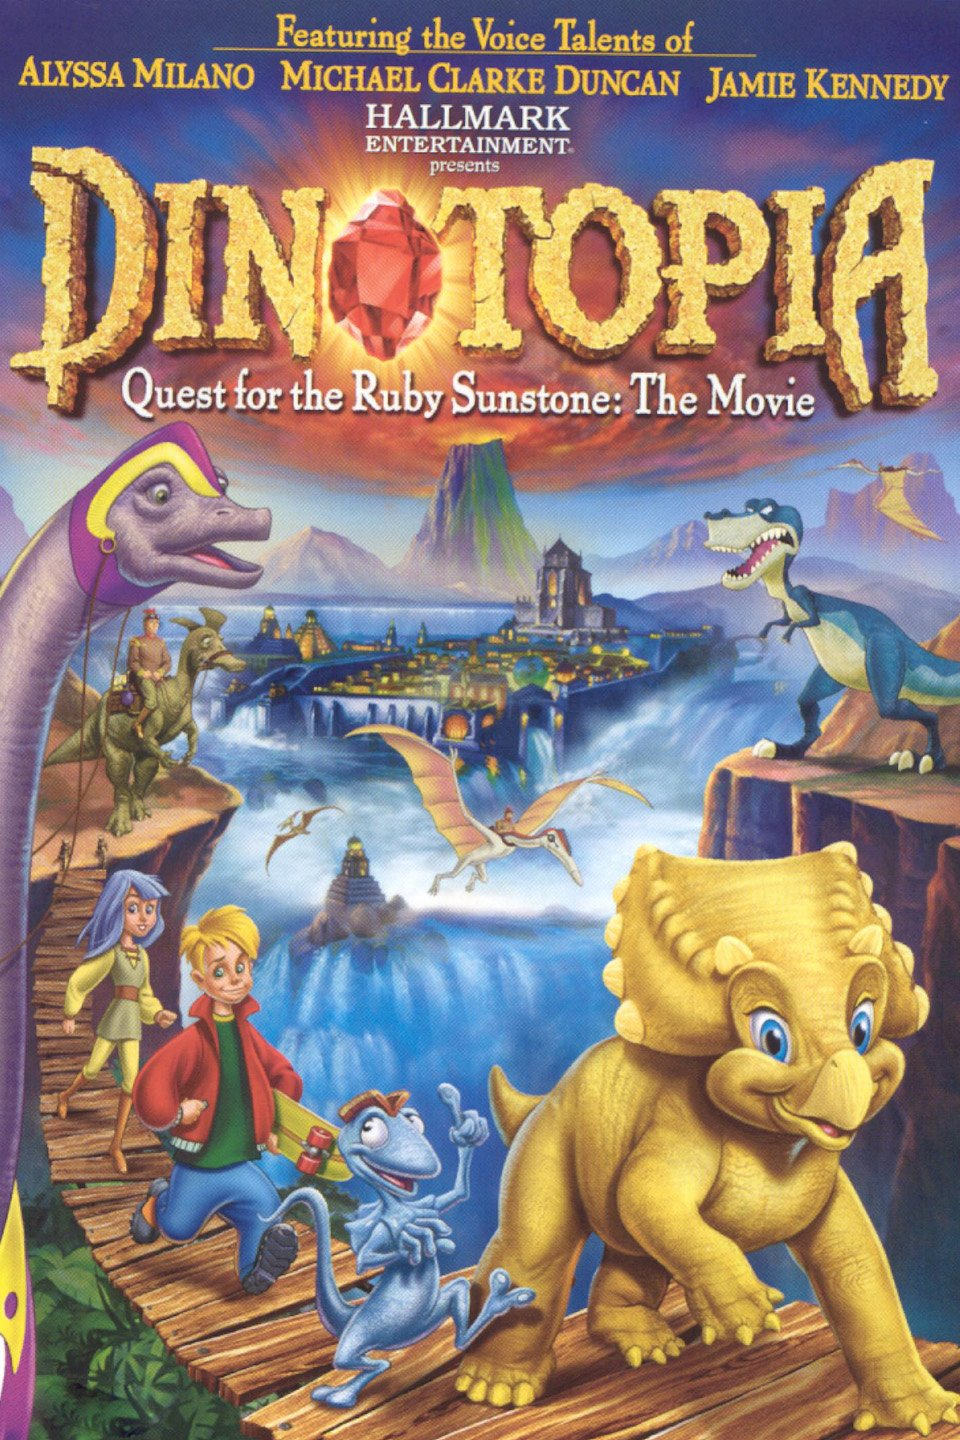 Dinotopia: Quest for the Ruby Sunstone (2005)